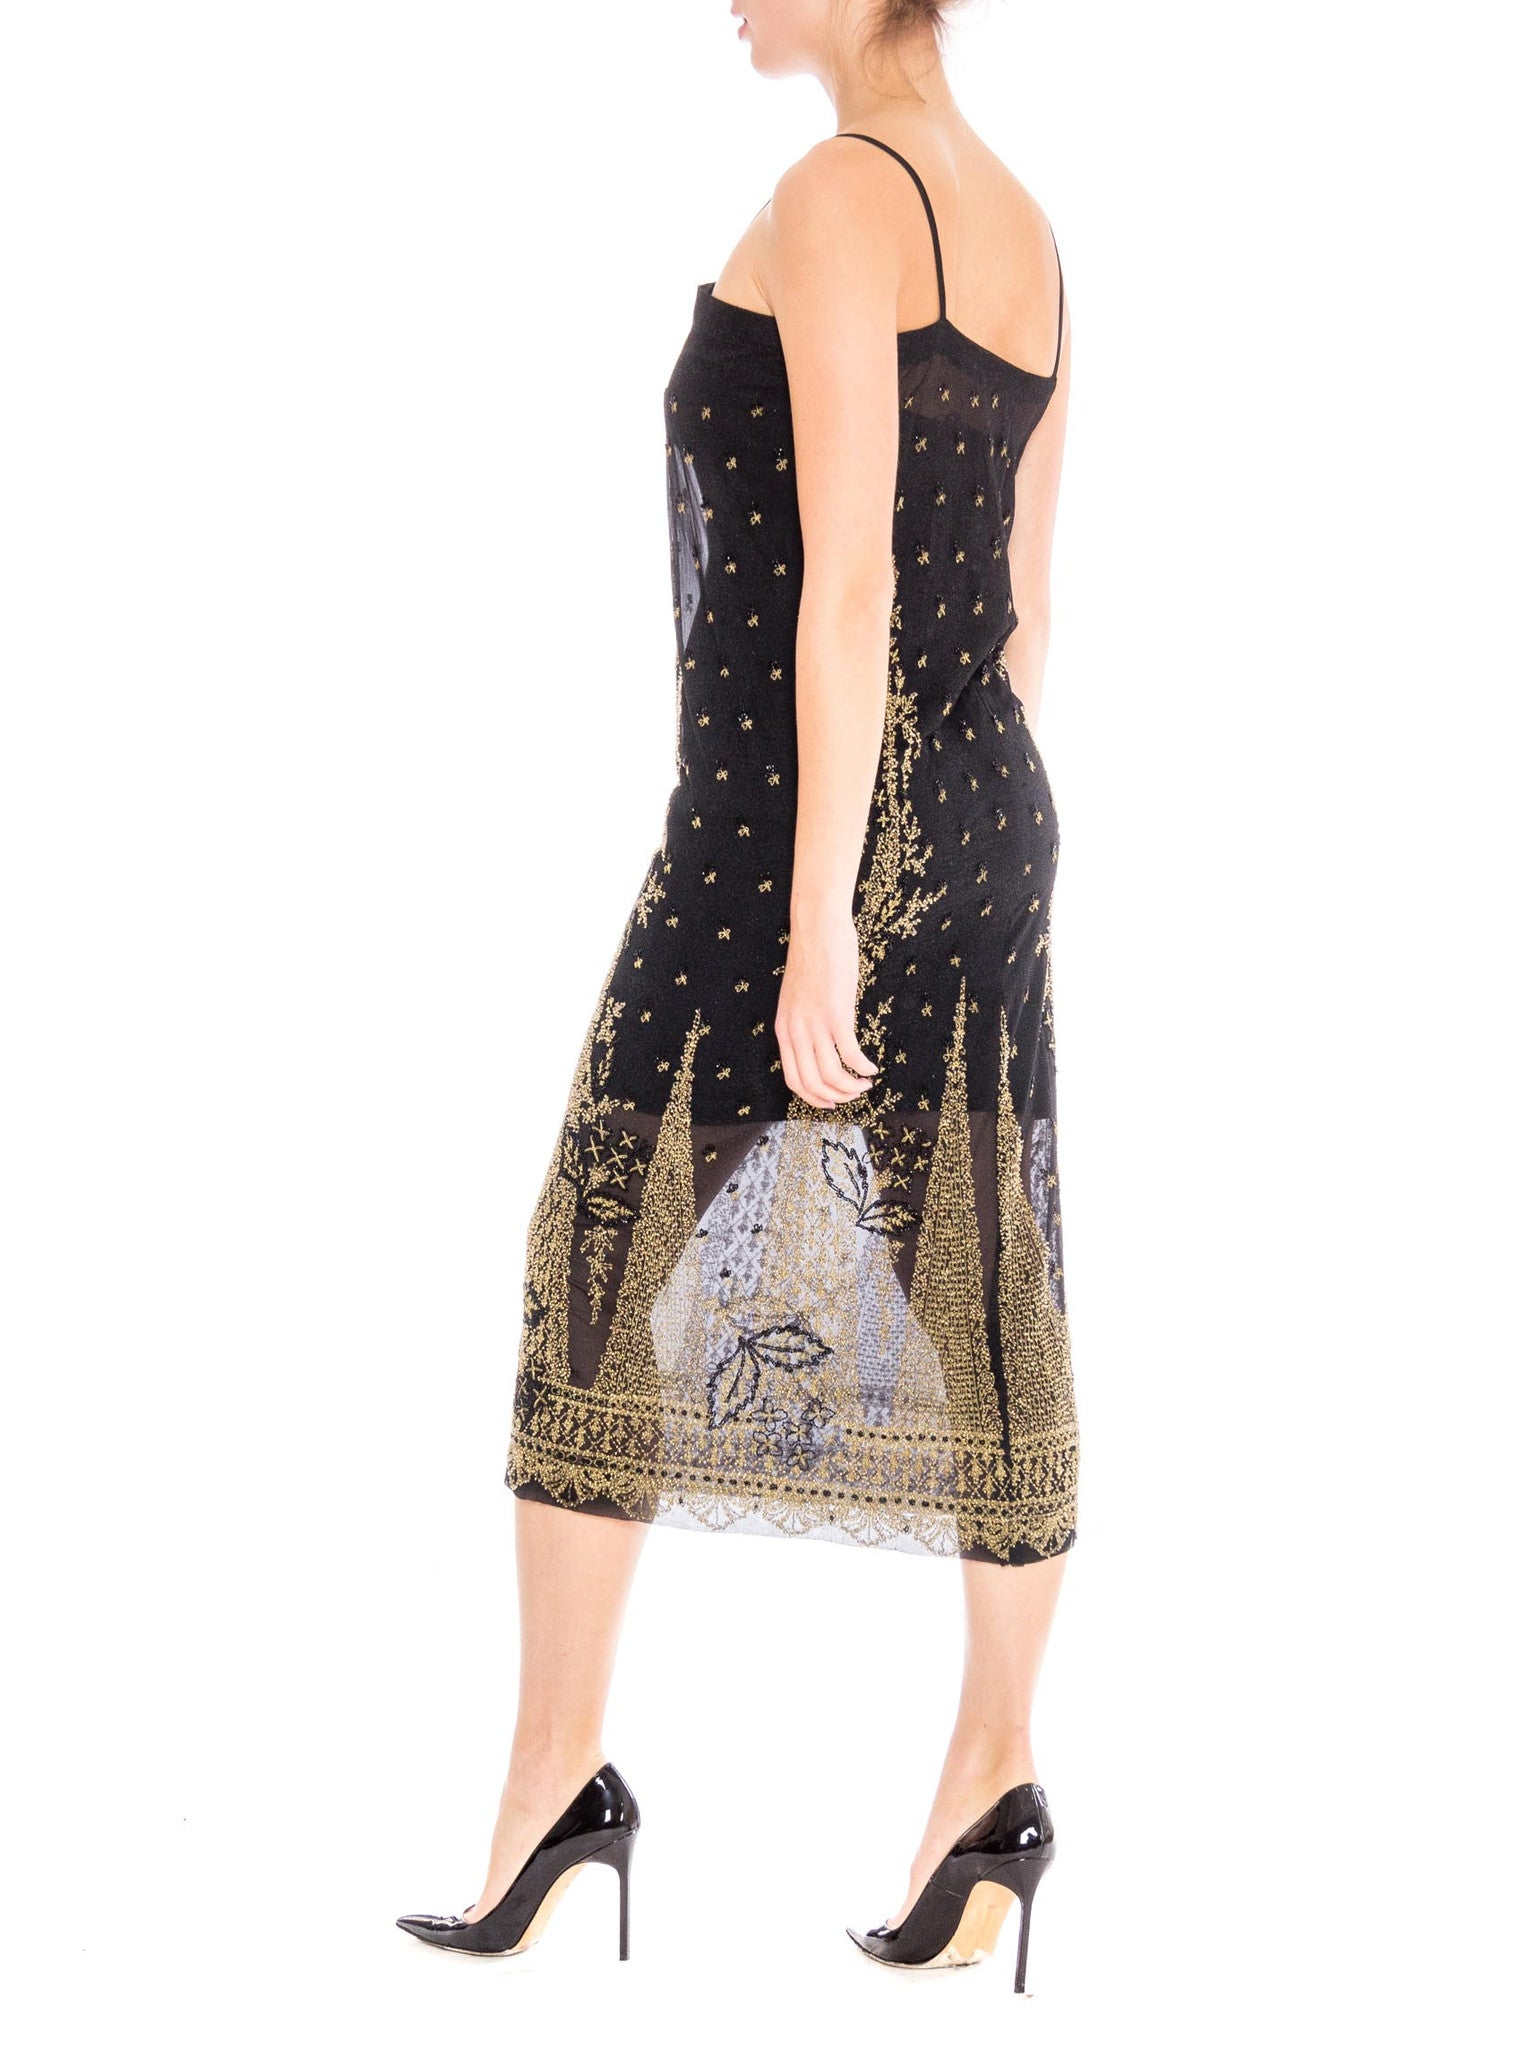 1920S Black Net Sheer Cocktail Dress With Gold Embroidery & Beading